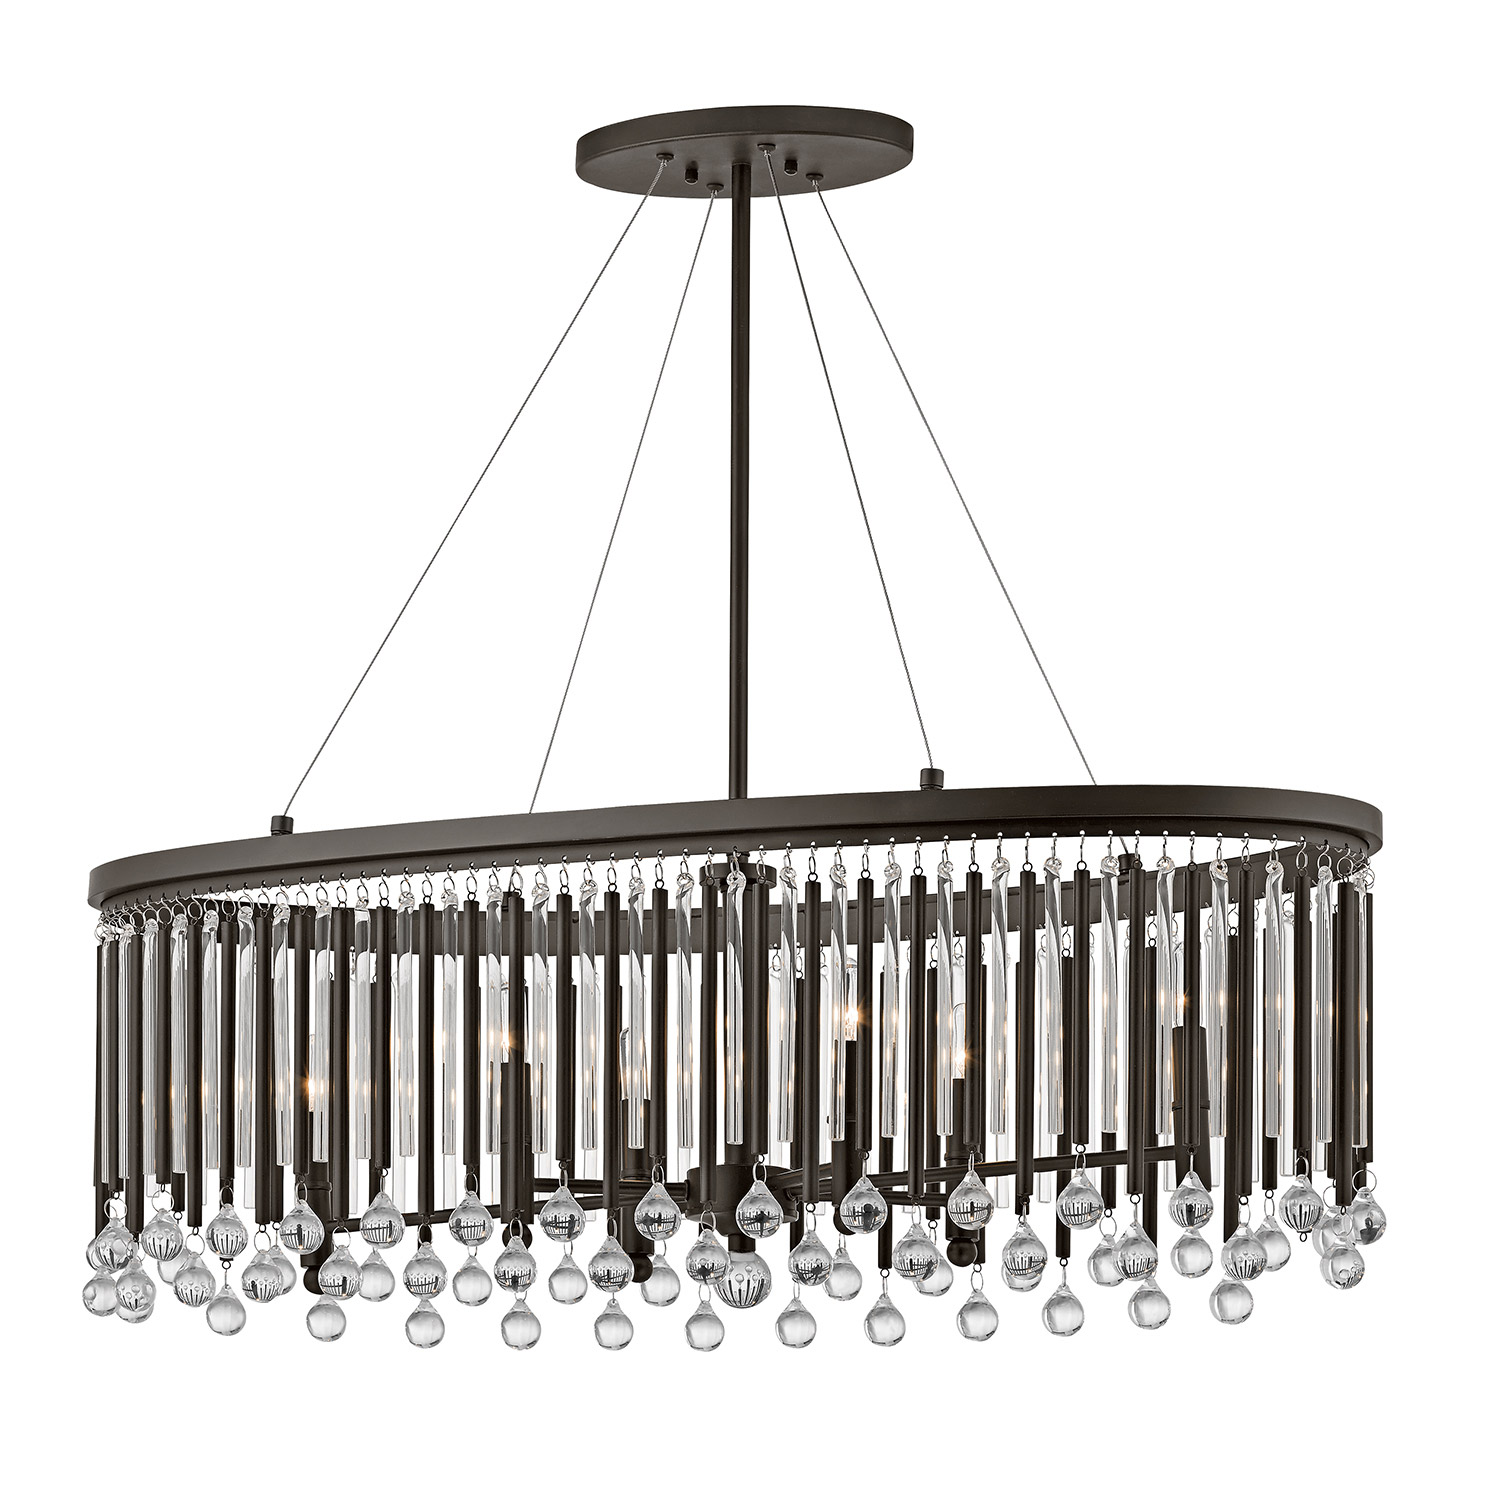 foundrylighting large modern f chapman e in com chandelier oval bronze chc launceton visual comfort product